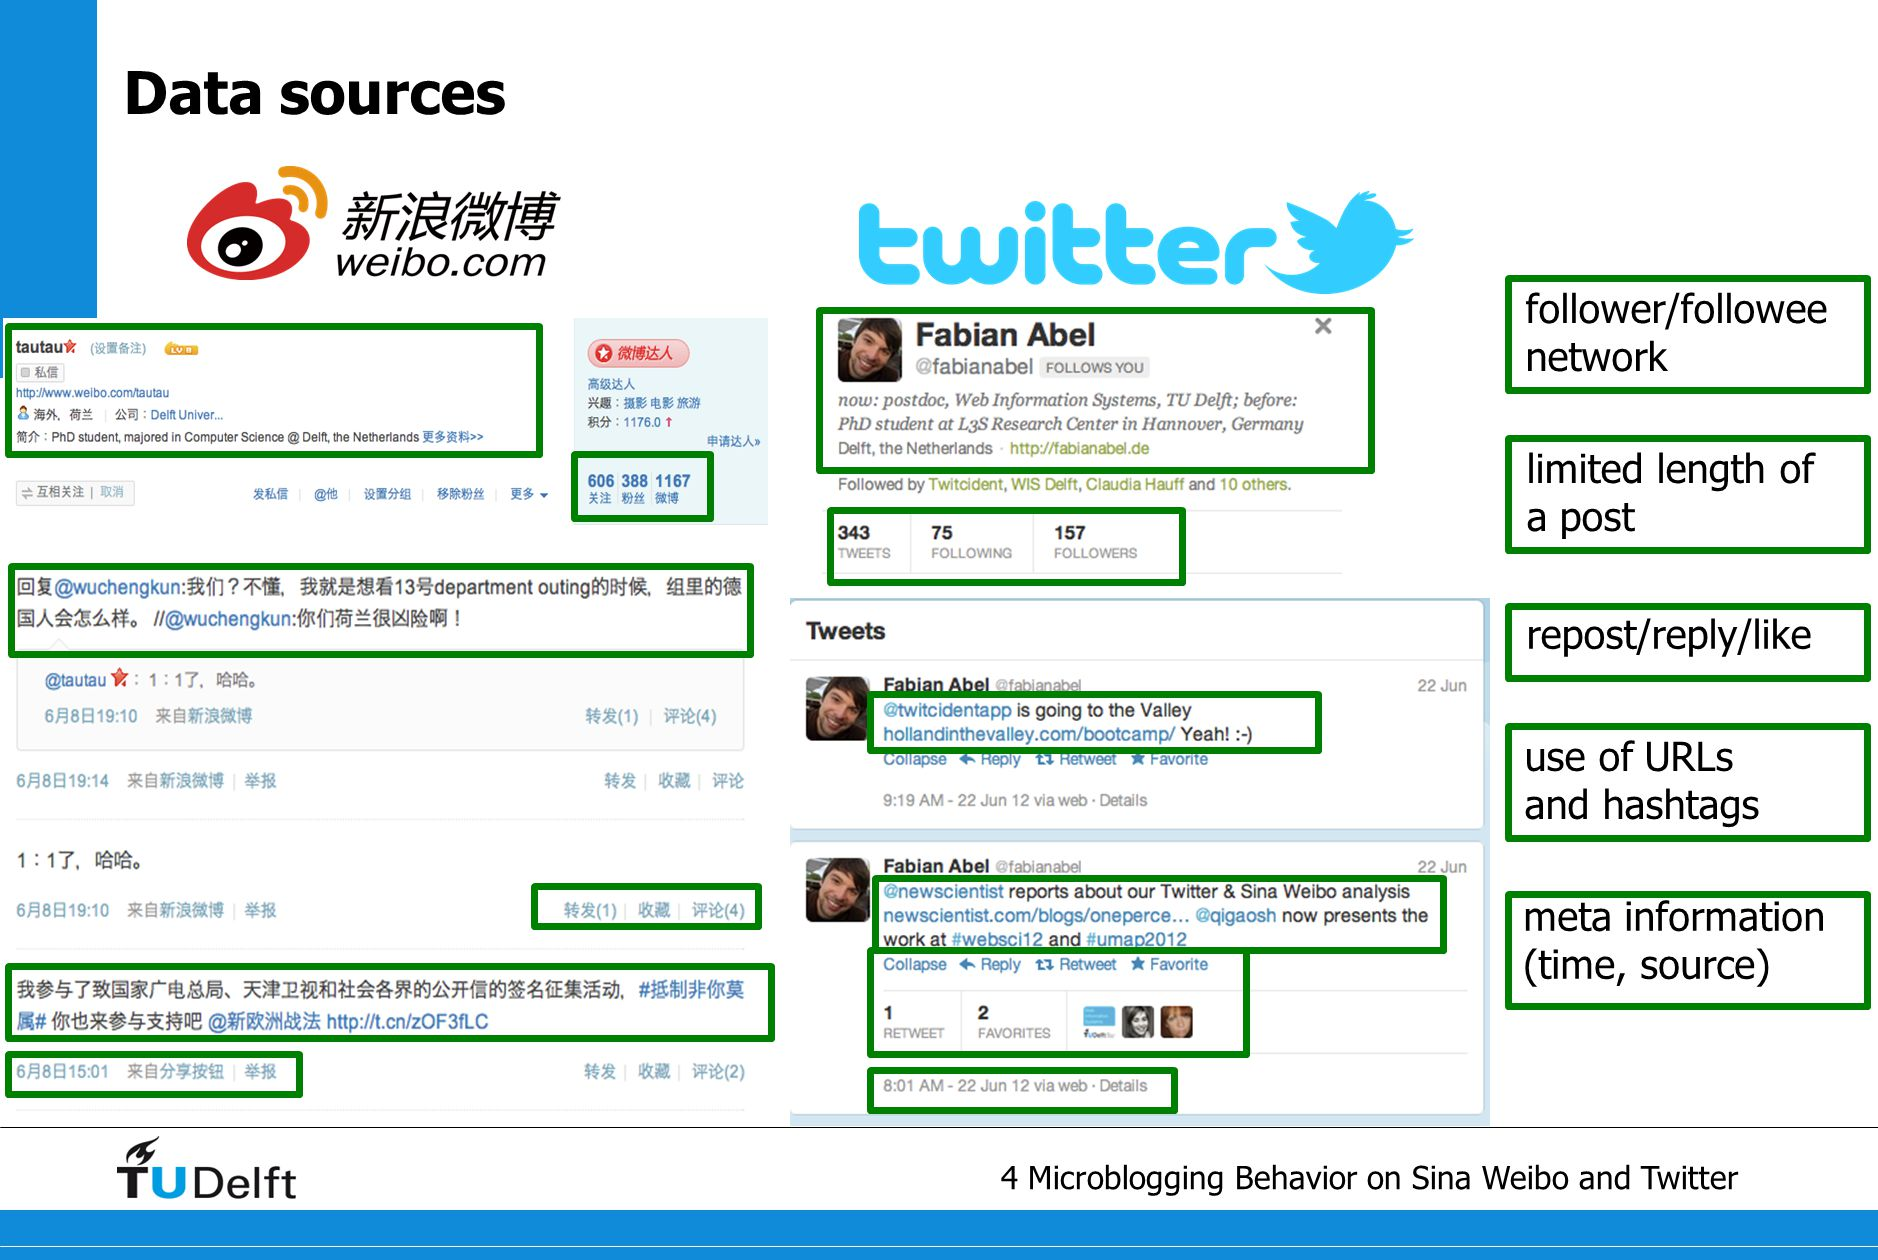 5 Microblogging Behavior on Sina Weibo and Twitter User modeling and analysis framework Microblogging Platforms Semantic Web Cultural Analytics syntactic analysis temporal analysis semantic analysis sentiment analysis Data Processing and User Profiling topic/interest modeling semantic enrichment data acquisition metadata extraction user profile construction multilingual NER